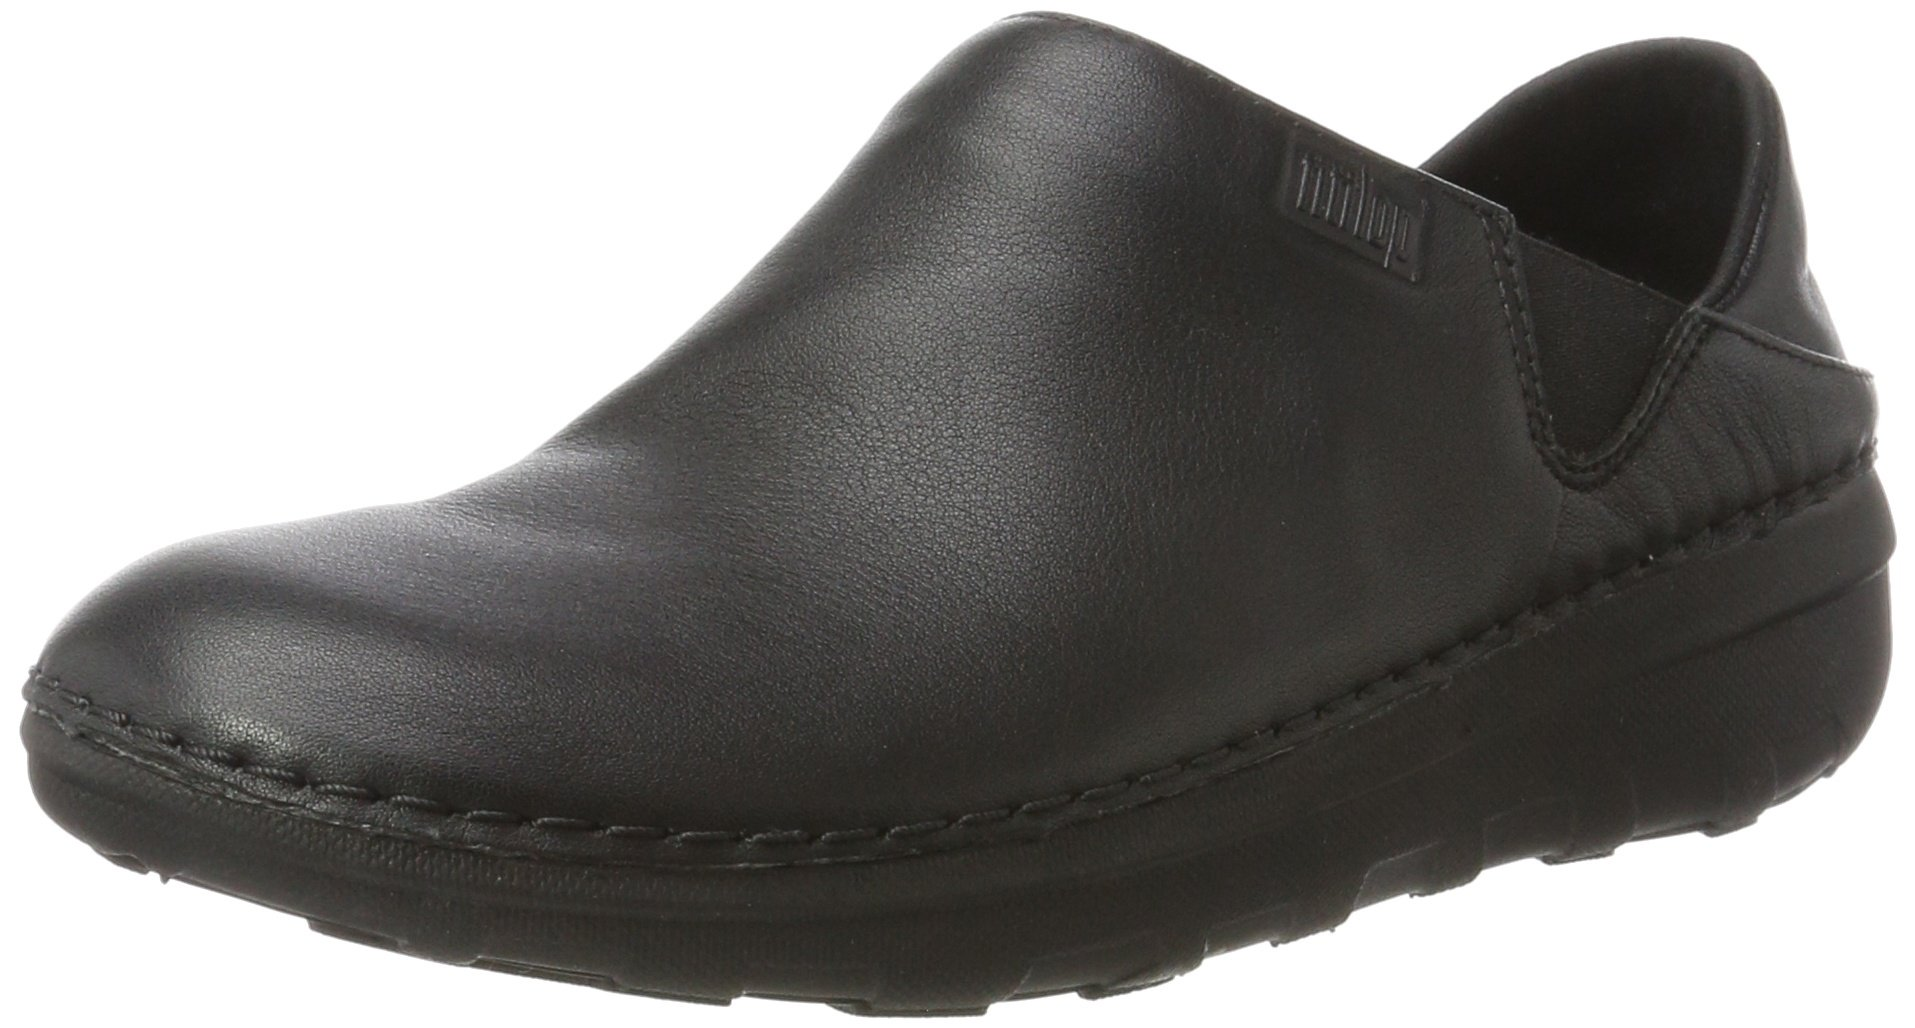 FitFlop Women's SUPERLOAFER Medical Professional Shoe, All All Black, 8.5 M US